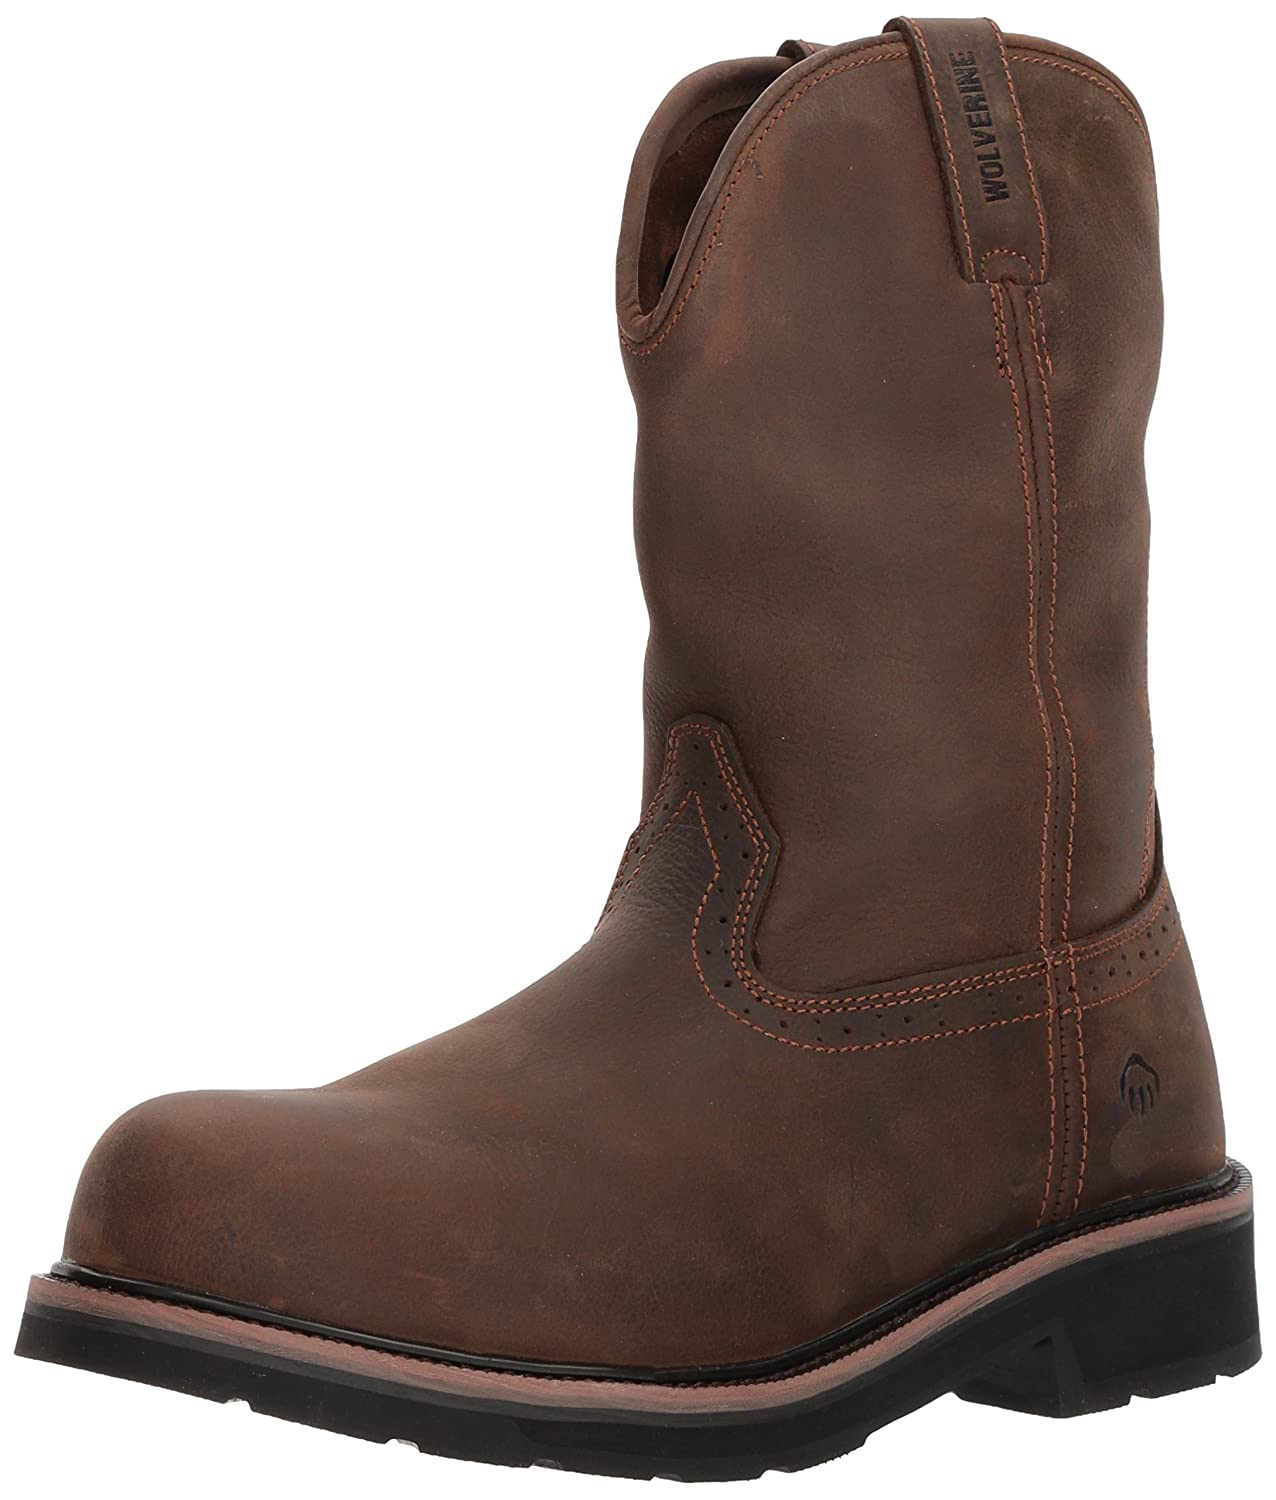 a5ffc865dec Wolverine Men's Ranchero Steel-Toe Wellington Construction Boot